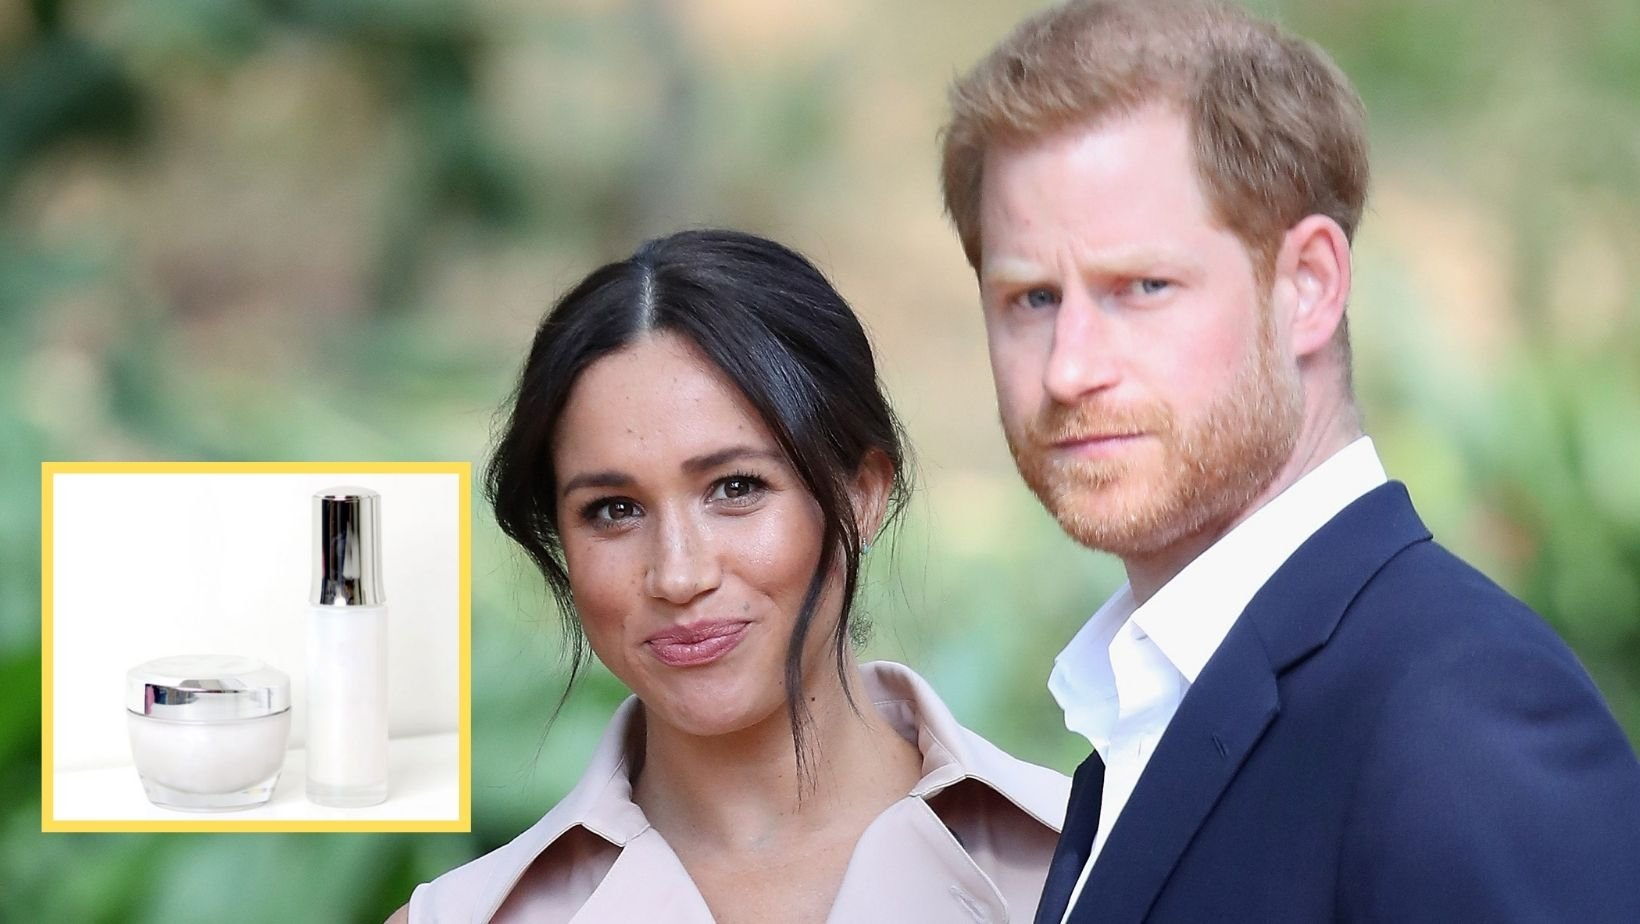 1 78.jpg?resize=1200,630 - Harry & Meghan Faces Backlash For Partnering With Procter & Gamble Which Sells 'R*cist' Whitening Creams